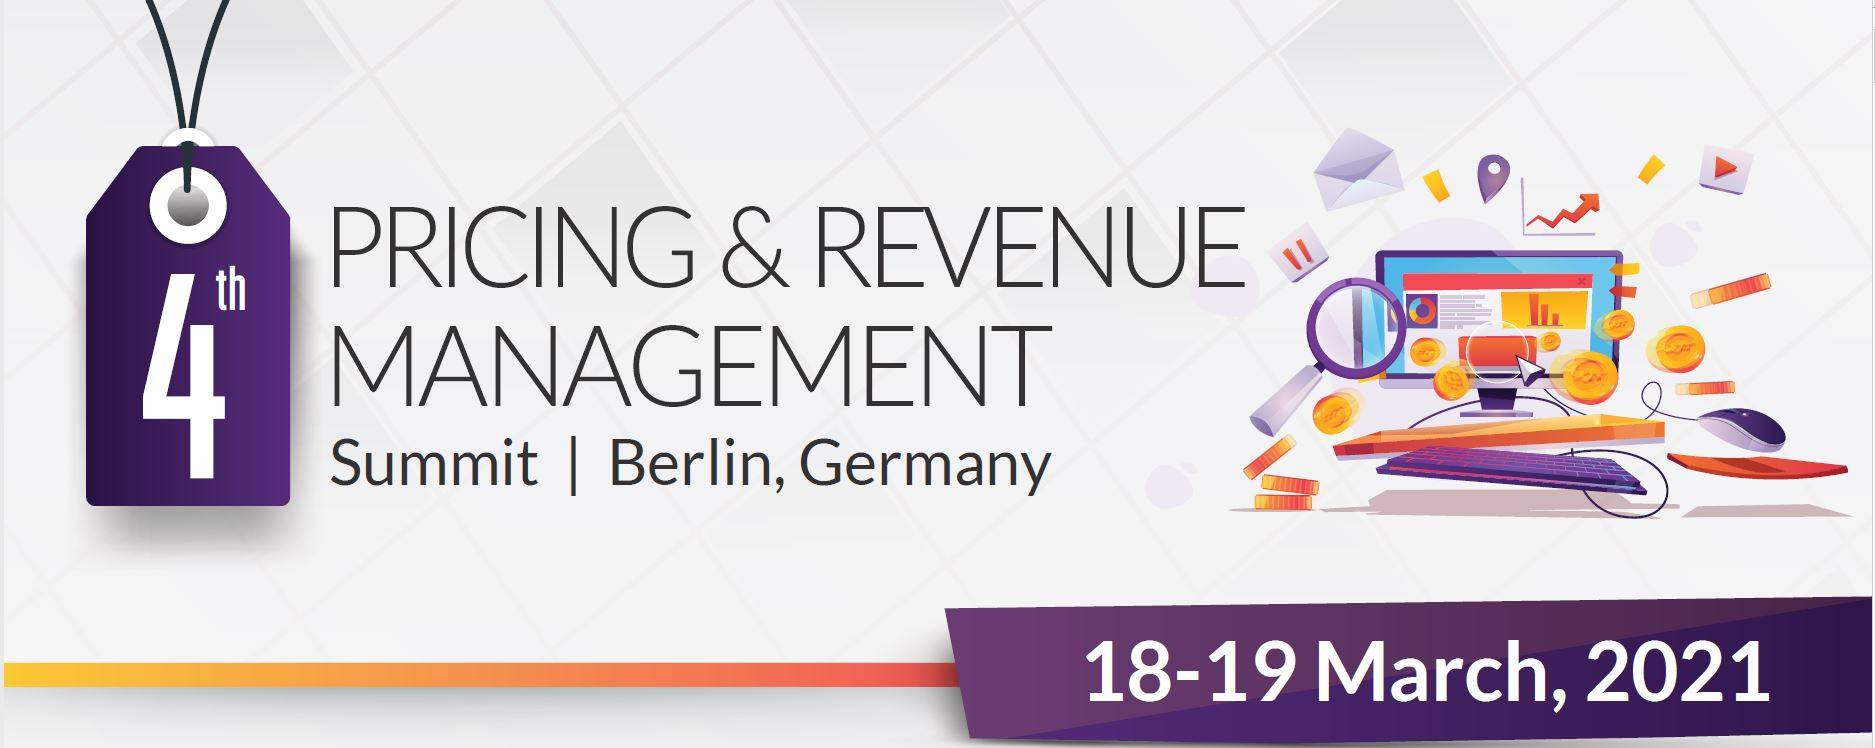 Pricing and Revenue Management Conference Blog